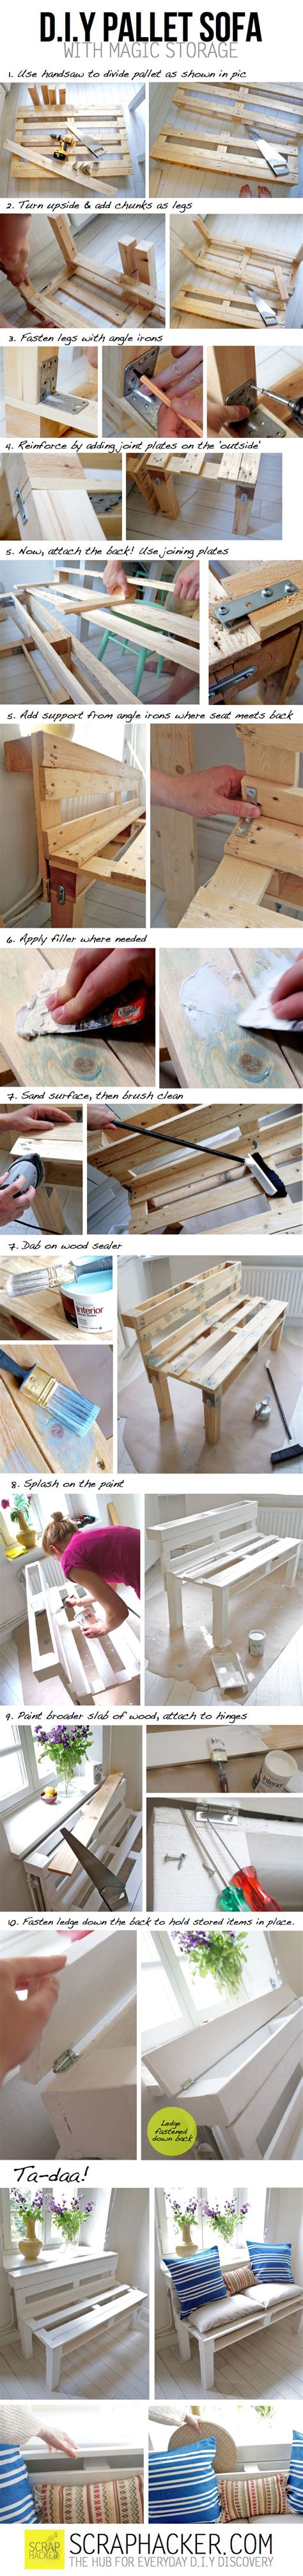 diy pallet sofa tutorial diy pallet sofa tutorial pictures photos and images for